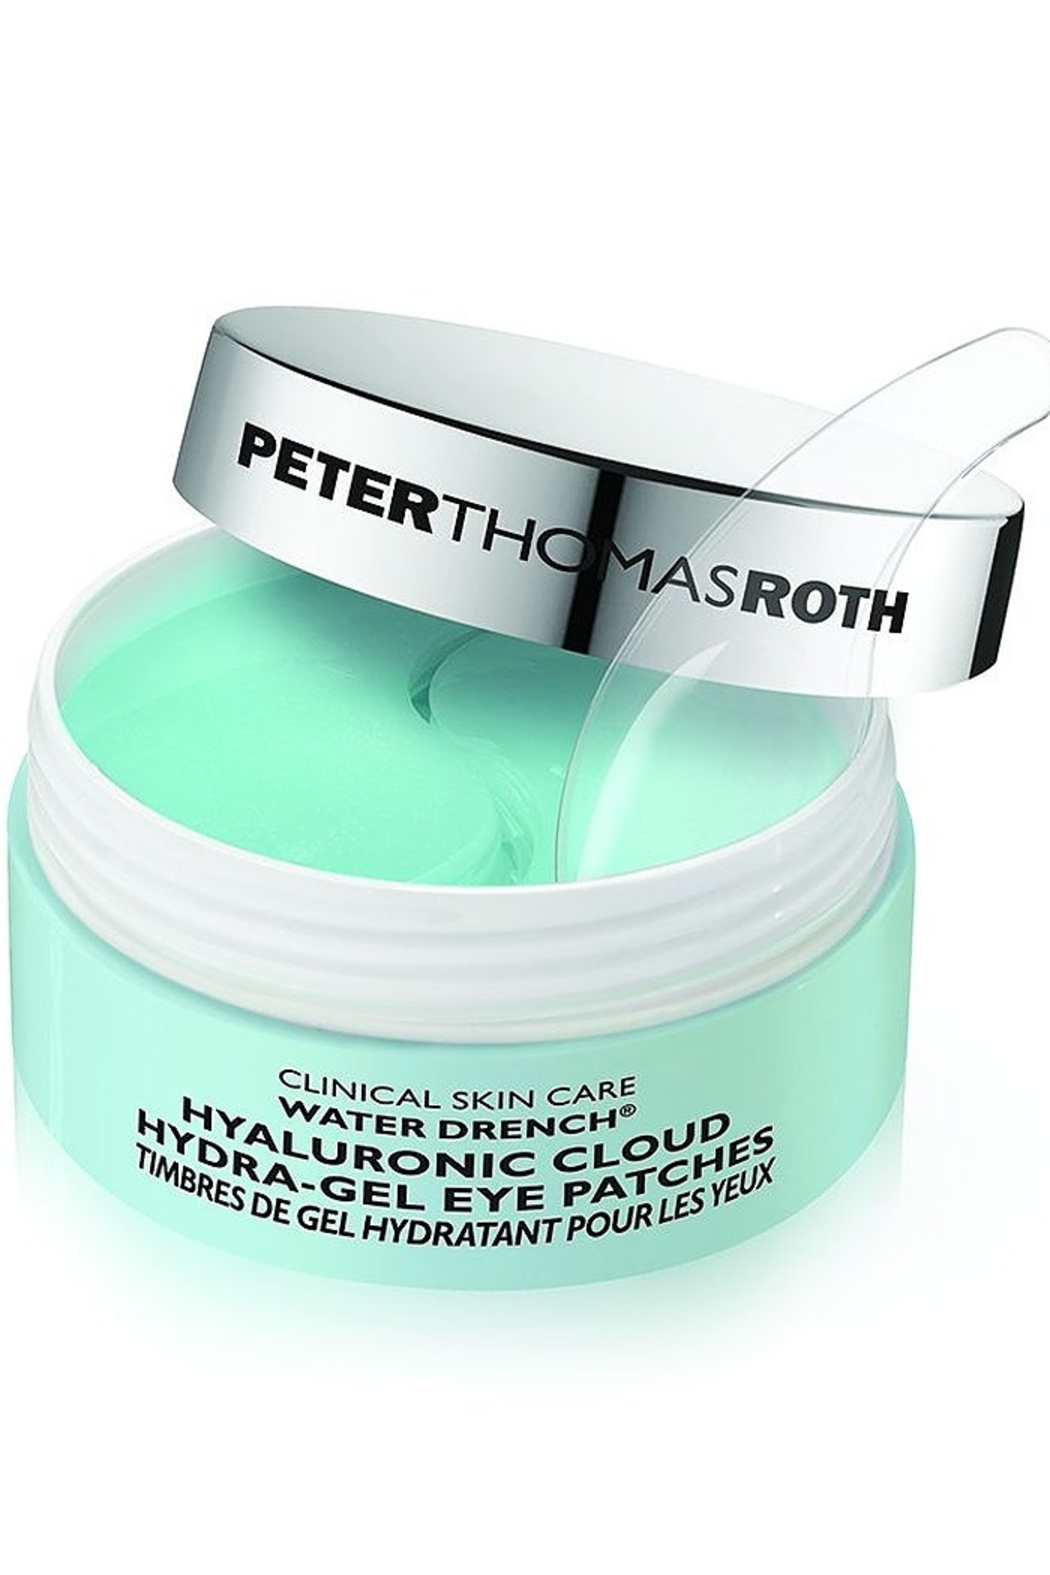 Peter Thomas Roth WATER DRENCH HYALURONIC CLOUD HYDRA-GEL EYE PATCHES - Main Image